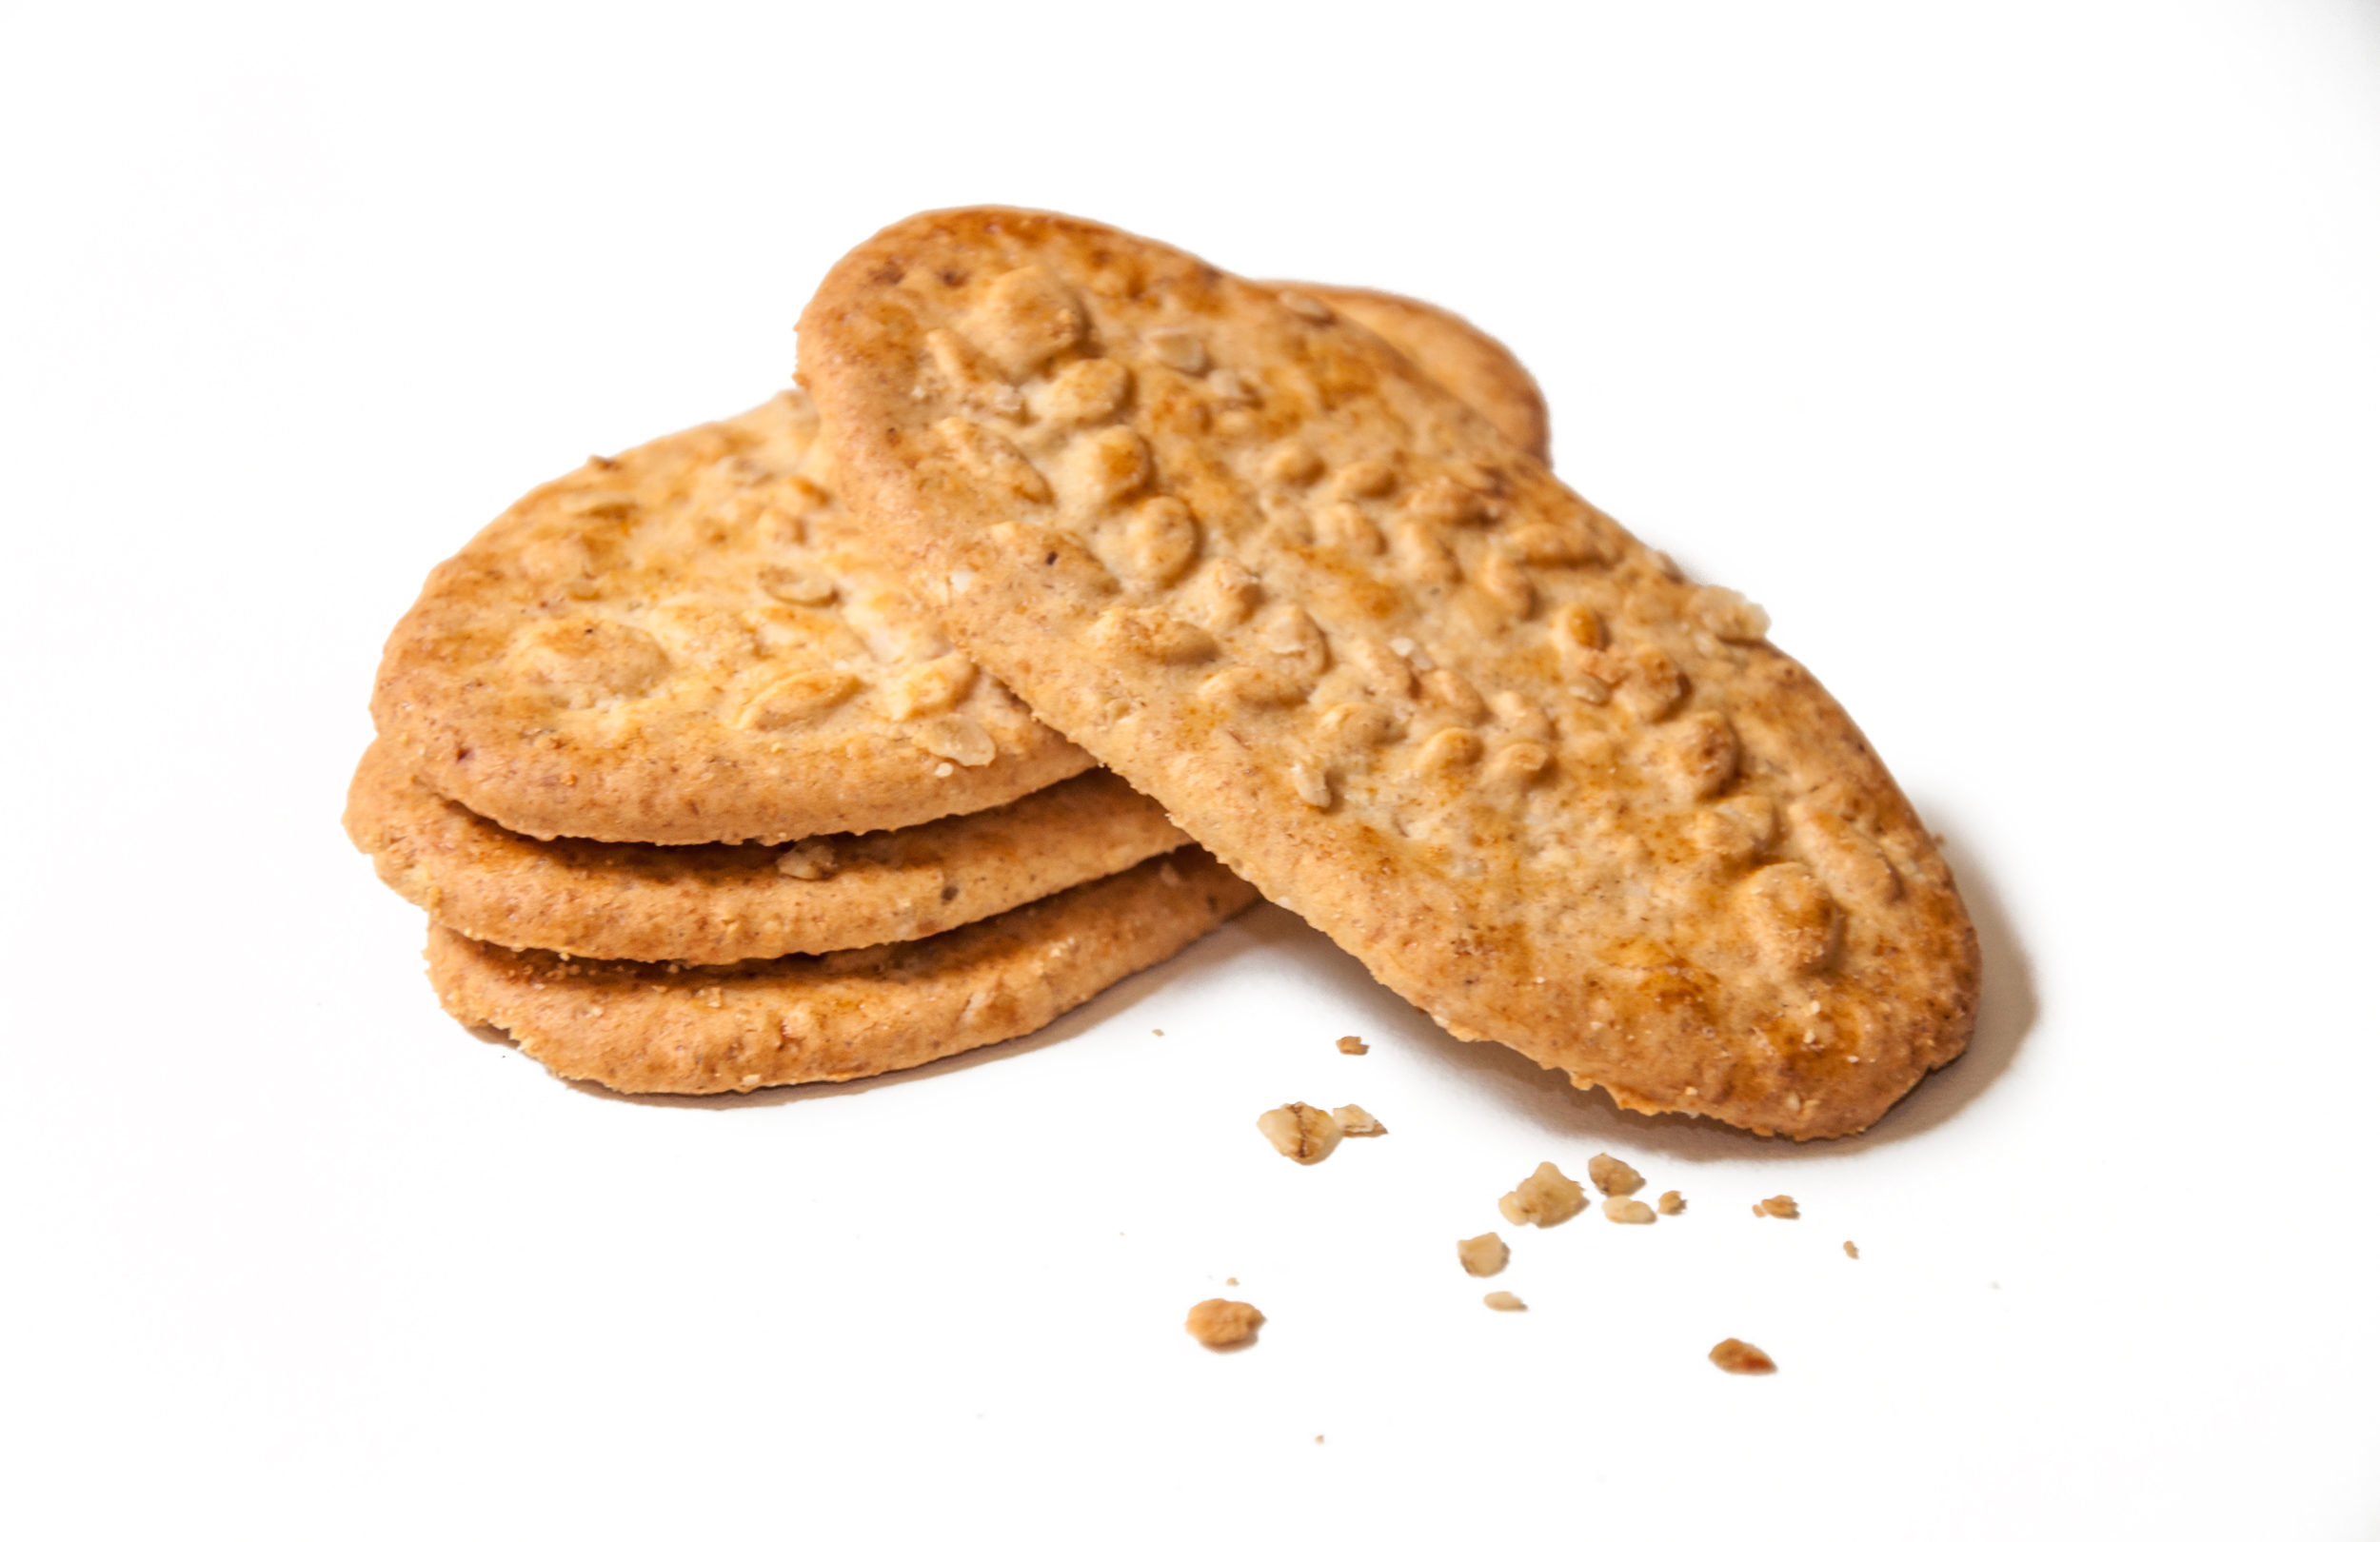 Delicious wheat biscuits cookies photo